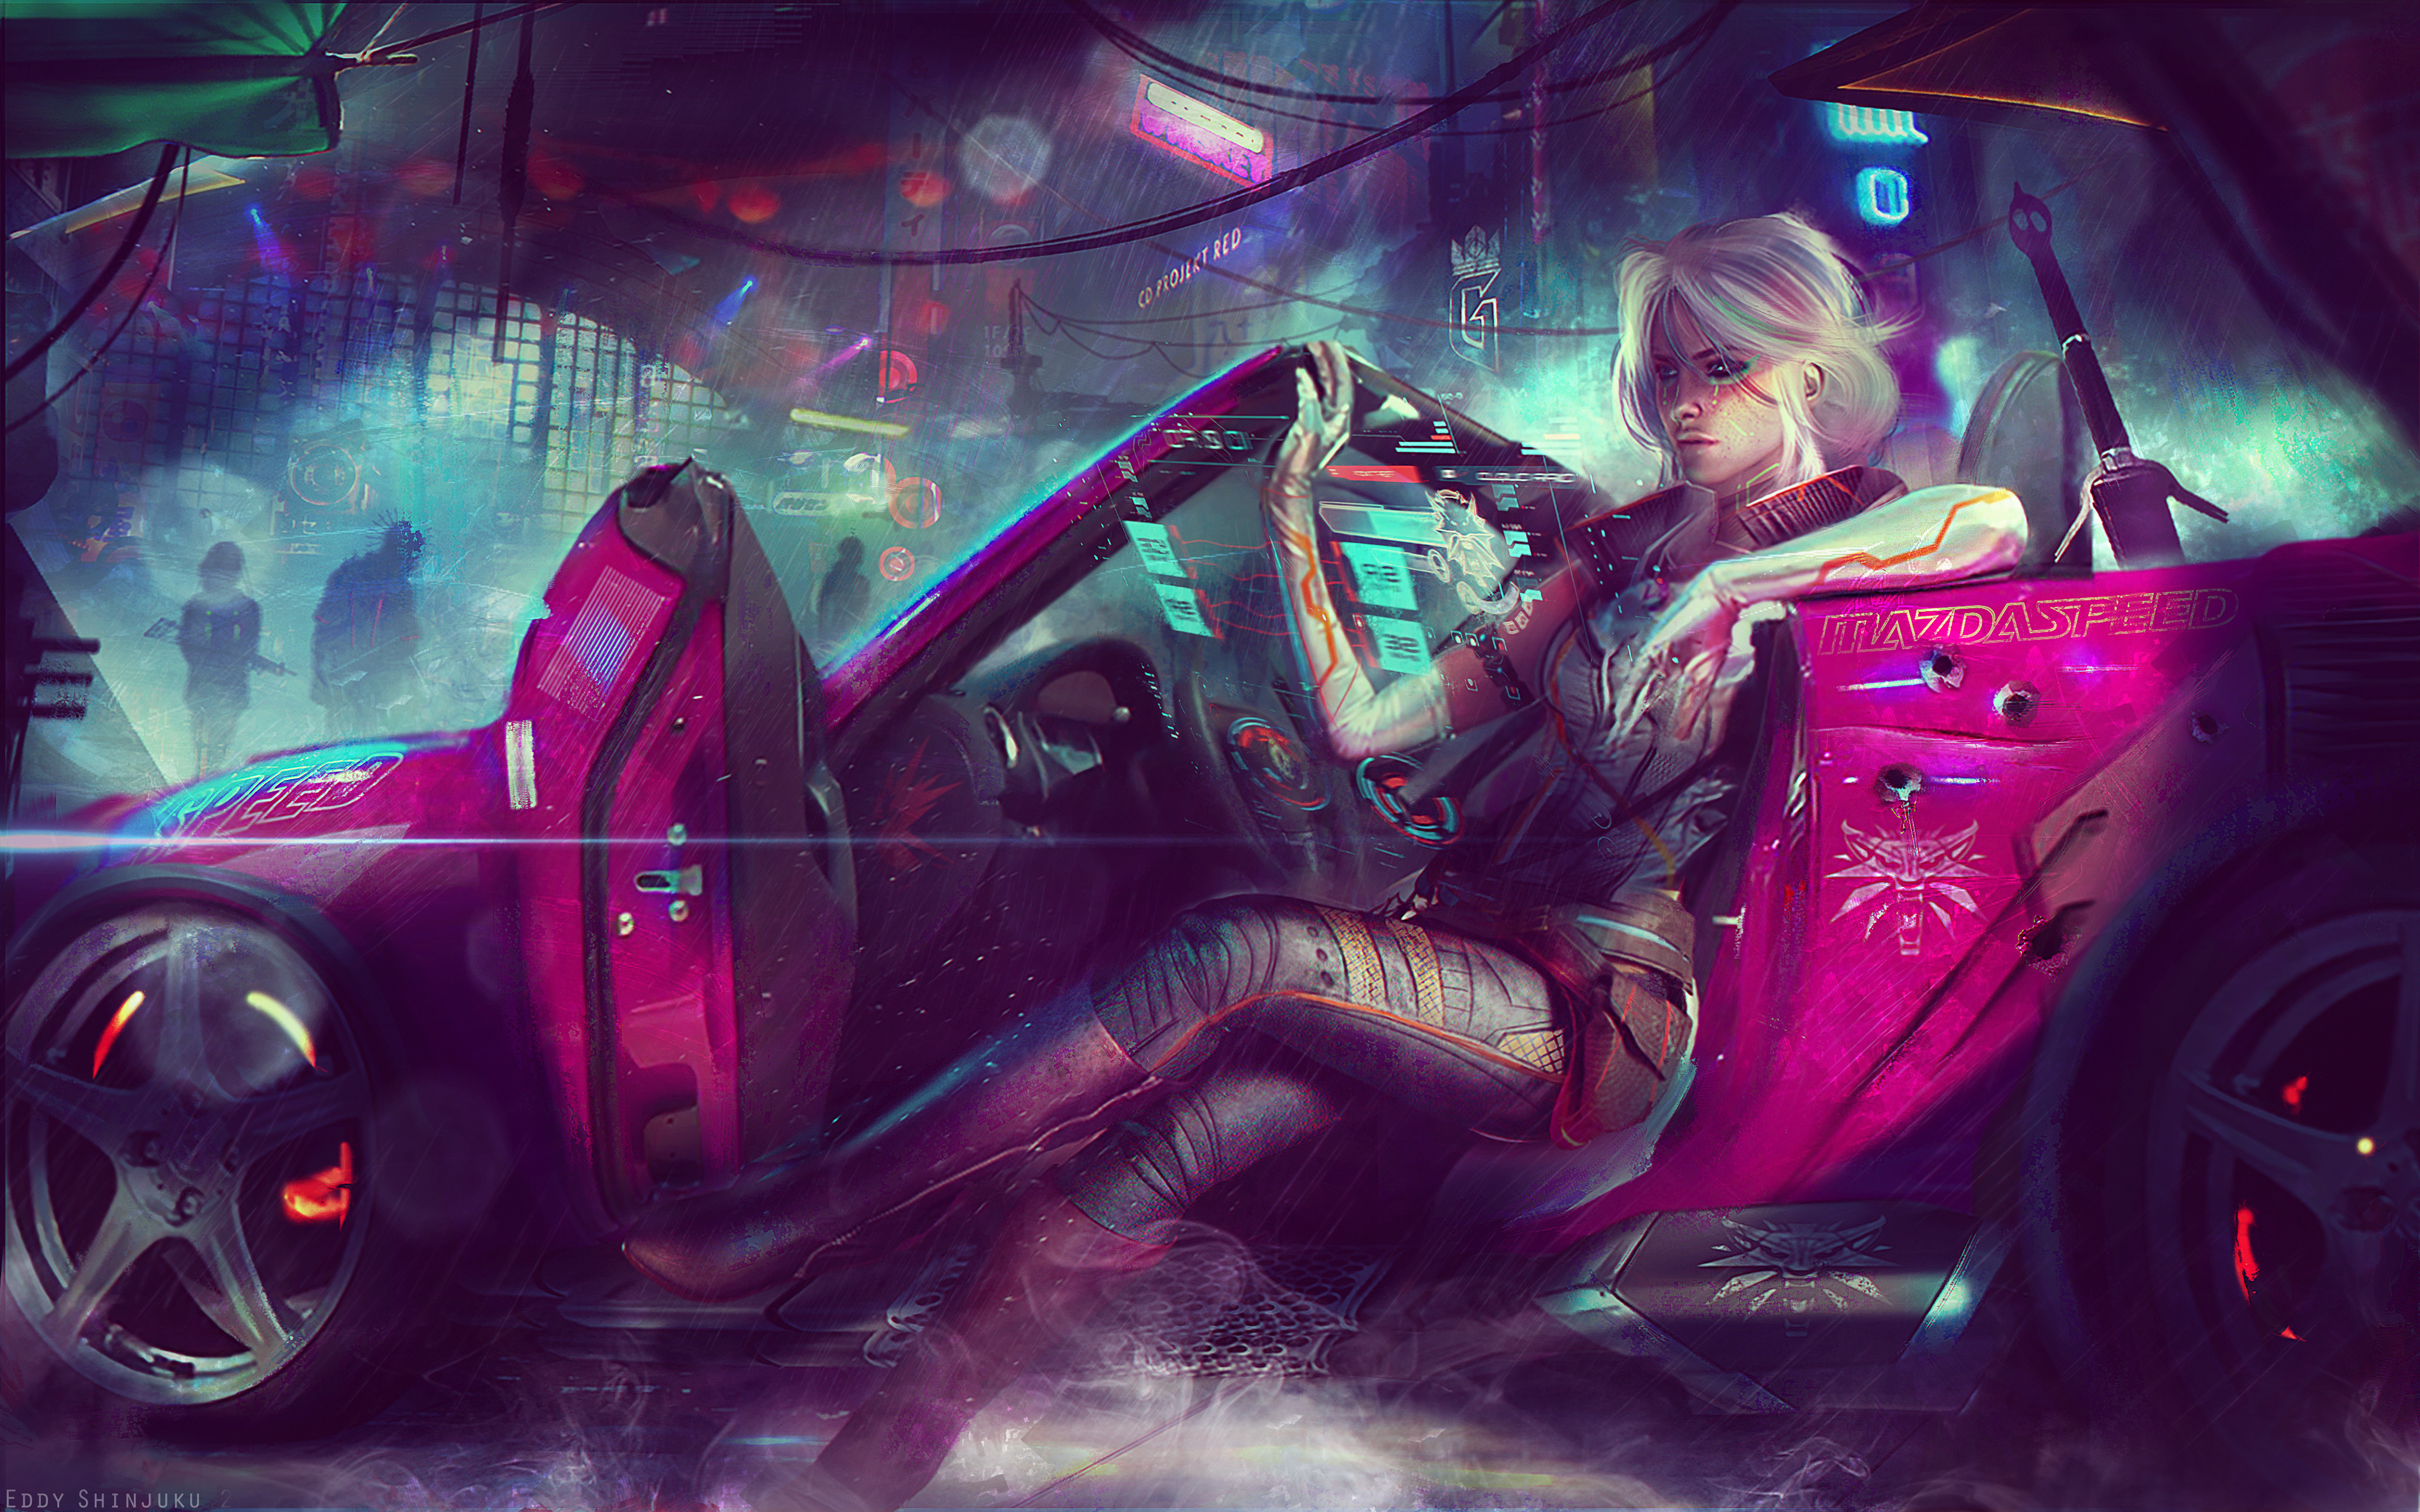 Ciri Cyberpunk 2077 4k Uhd Wallpaper By Eddy Shinjuku On Deviantart